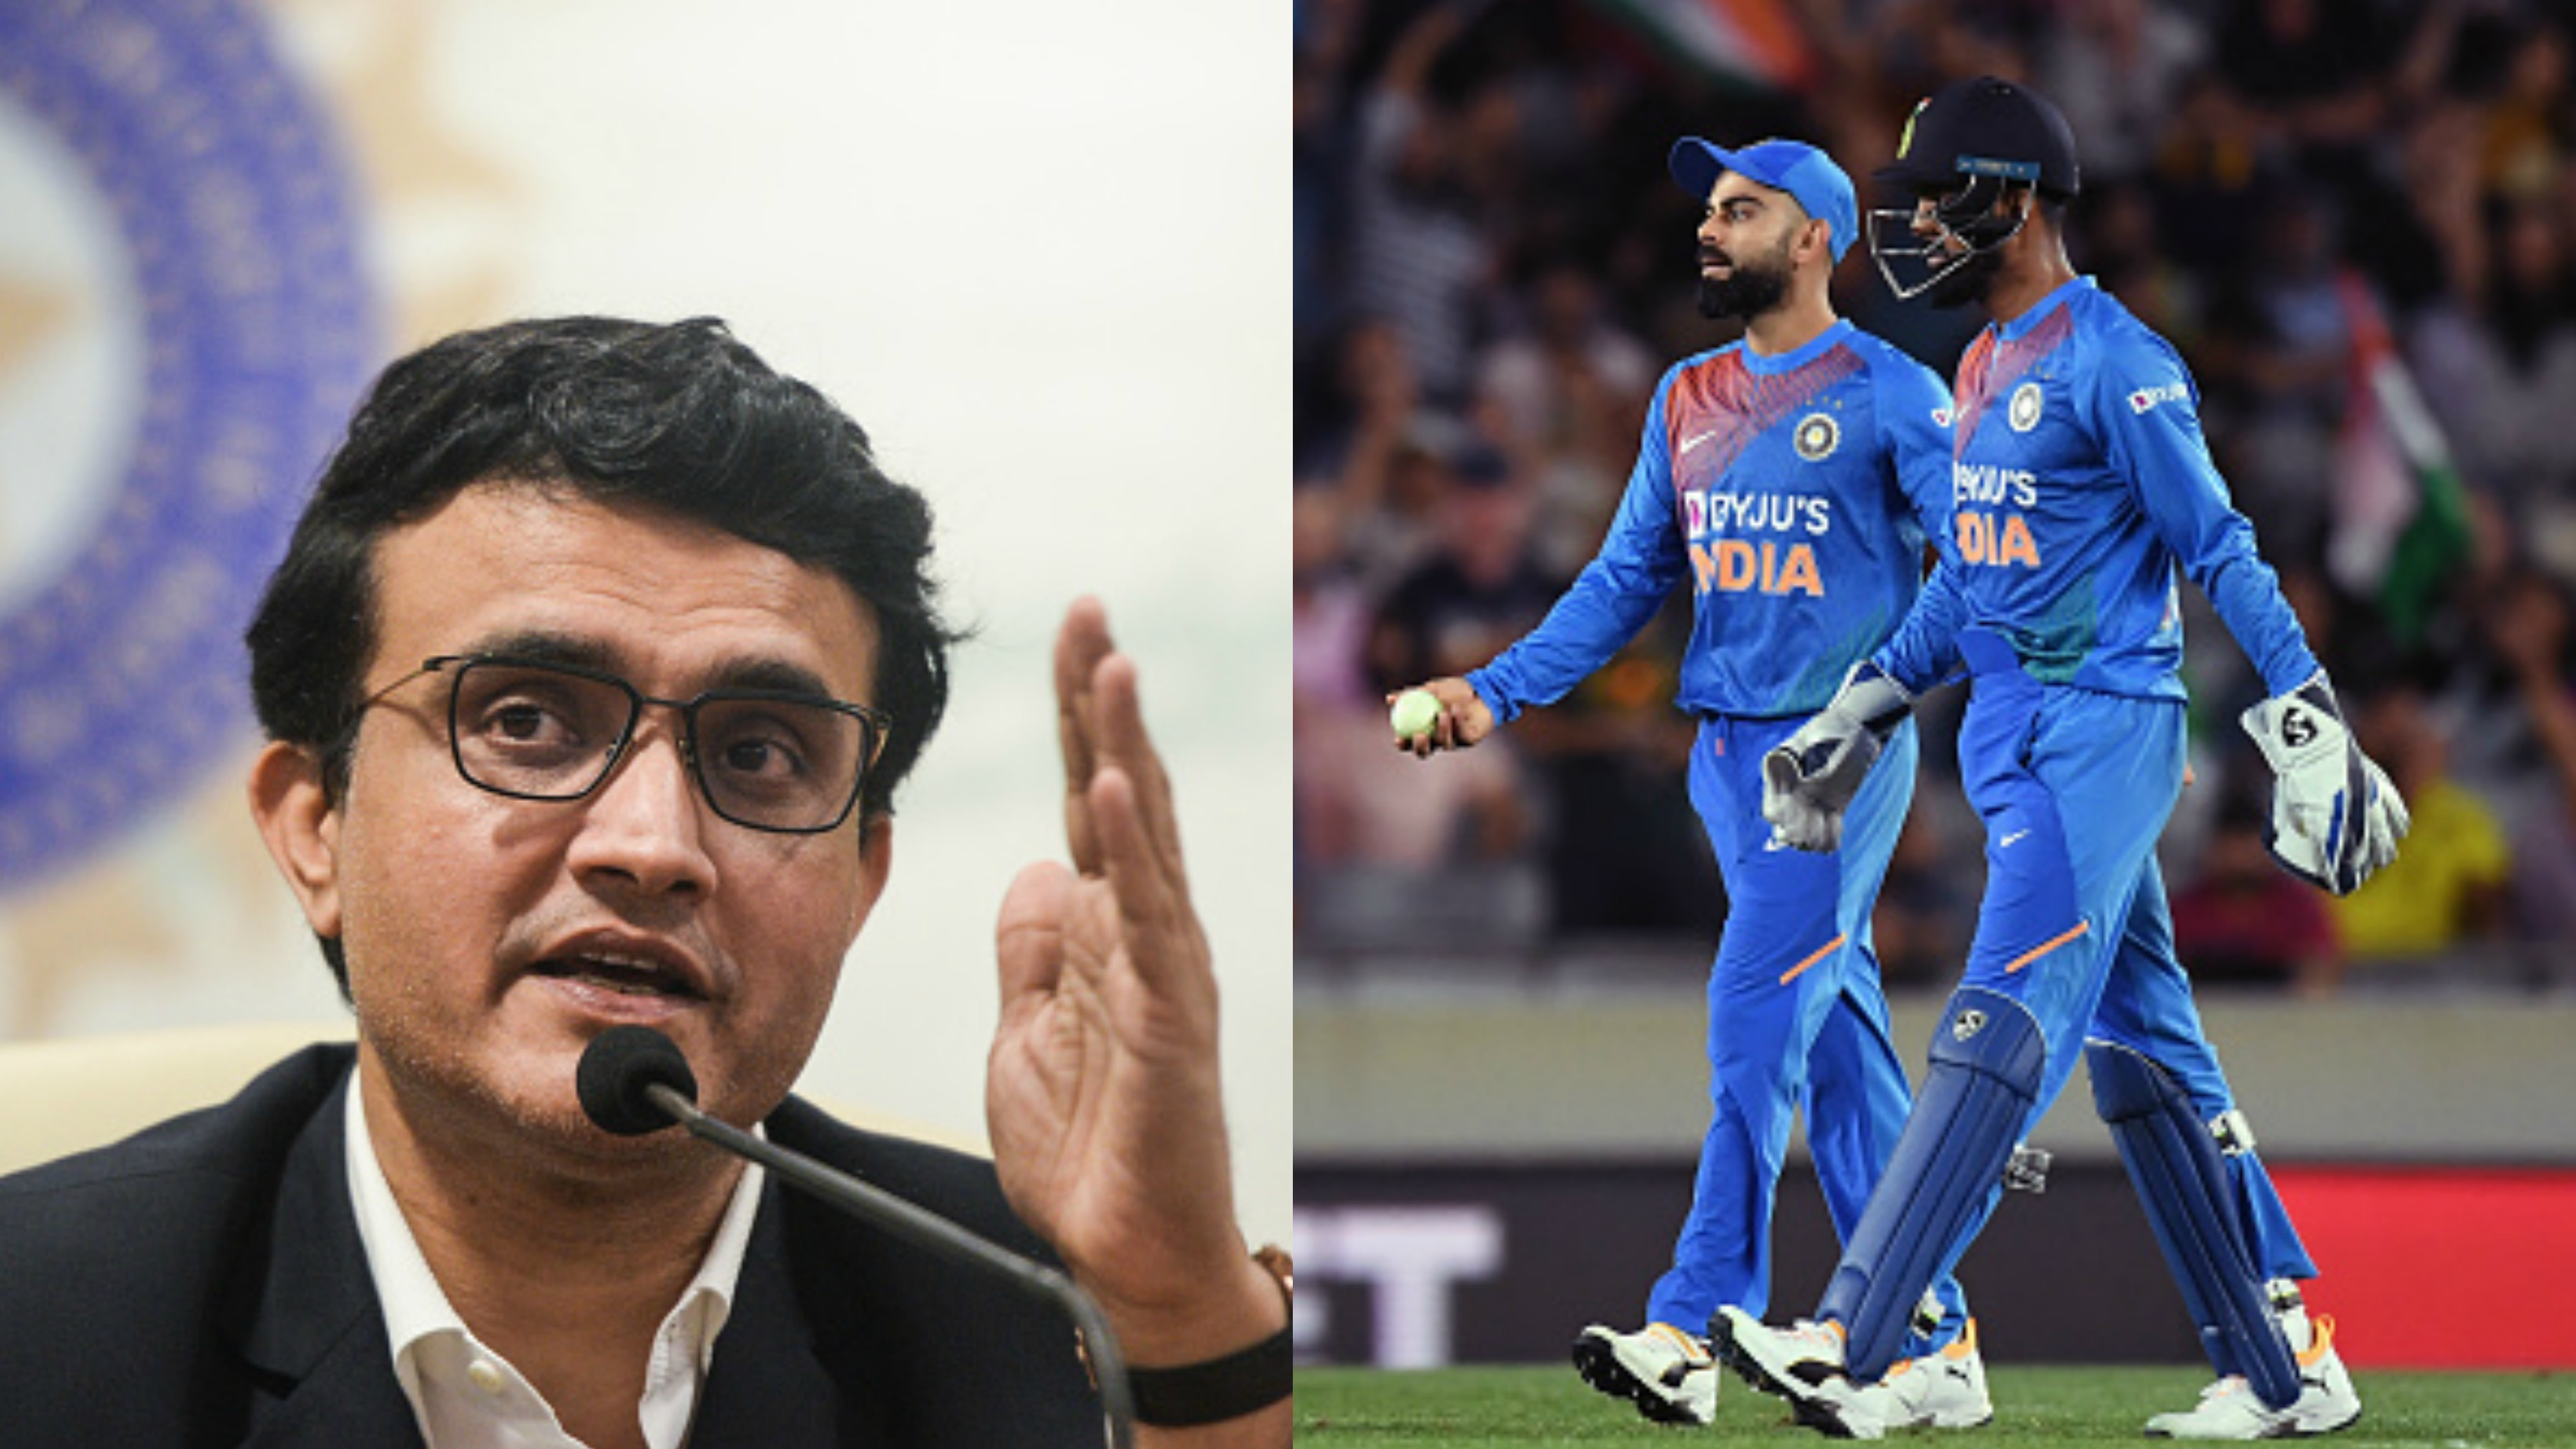 NZ v IND 2020: Sourav Ganguly reacts to Kohli's decision to play Rahul over Pant in Auckland T20I